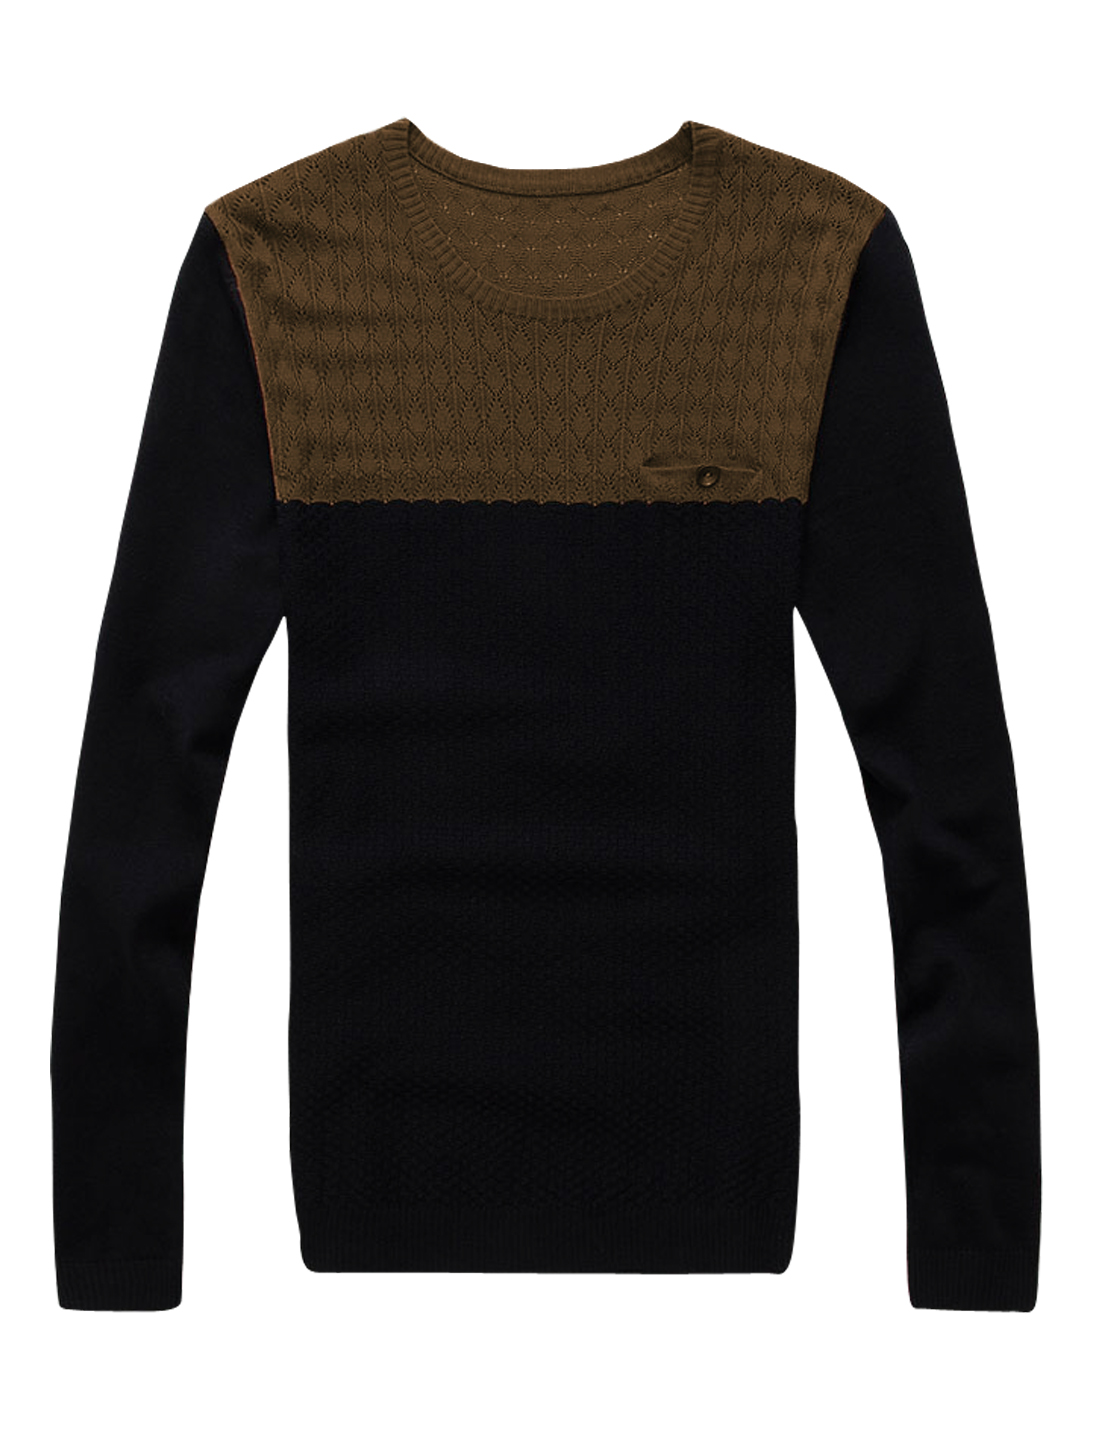 Men Argyle Design Contrast Color Round Neck Pullover Sweater Coffee Black M